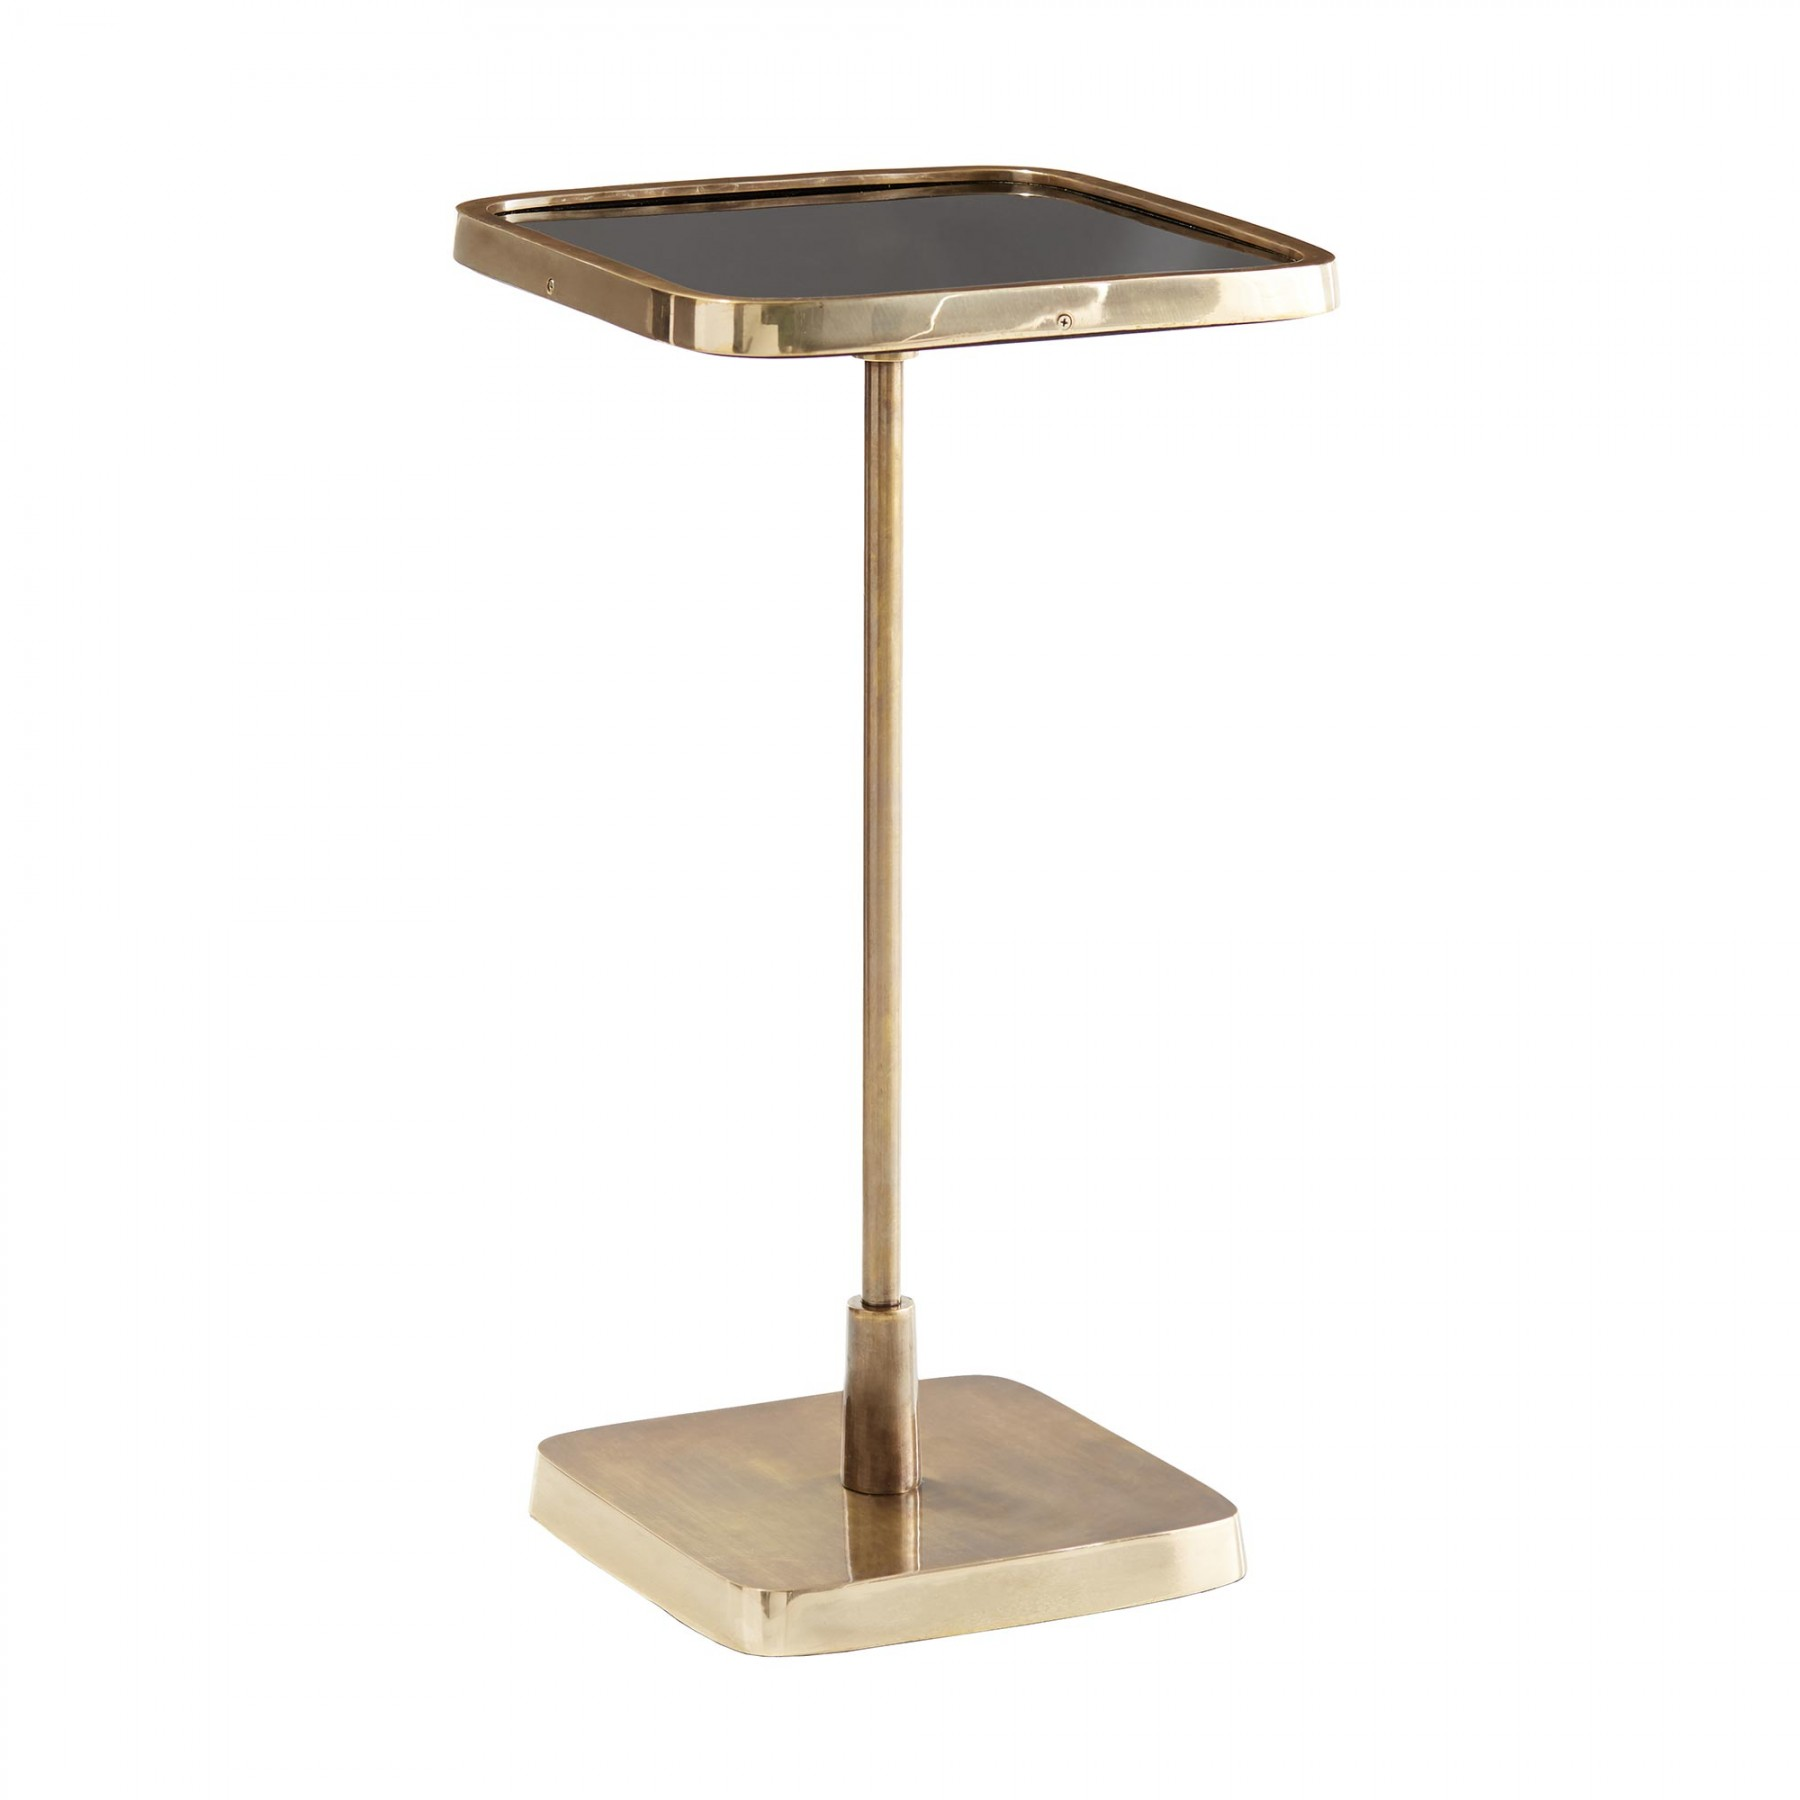 kaela square accent table oval garden kids plastic nic farm trestle dining buffet server room runners timber furniture brisbane marble and wood side metal coloured glass coffee